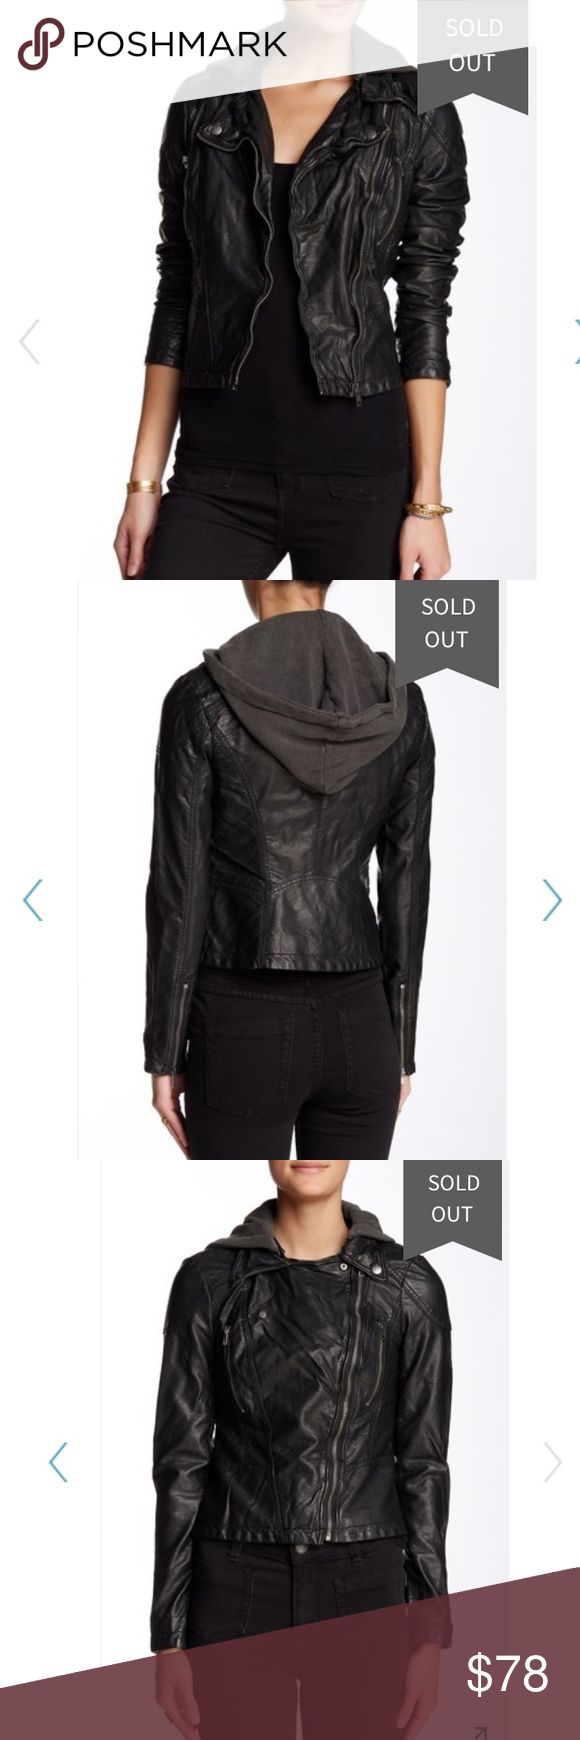 """FREE PEOPLE Hooded Vegan Leather Jacket NWT! Still for sale, full price, on Free People's website.  - Zip-off hood - Front zip closure - Long sleeves with zip cuffs - 2 chest zip pockets - Quilted panels - Lined - Faux leather construction - Approx. 21"""" length (size S) - Imported Fiber Content: Faux leather shell: 100% PU Body lining: 65% polyester, 35% cotton Sleeve lining: 100% polyester Free People Jackets & Coats"""